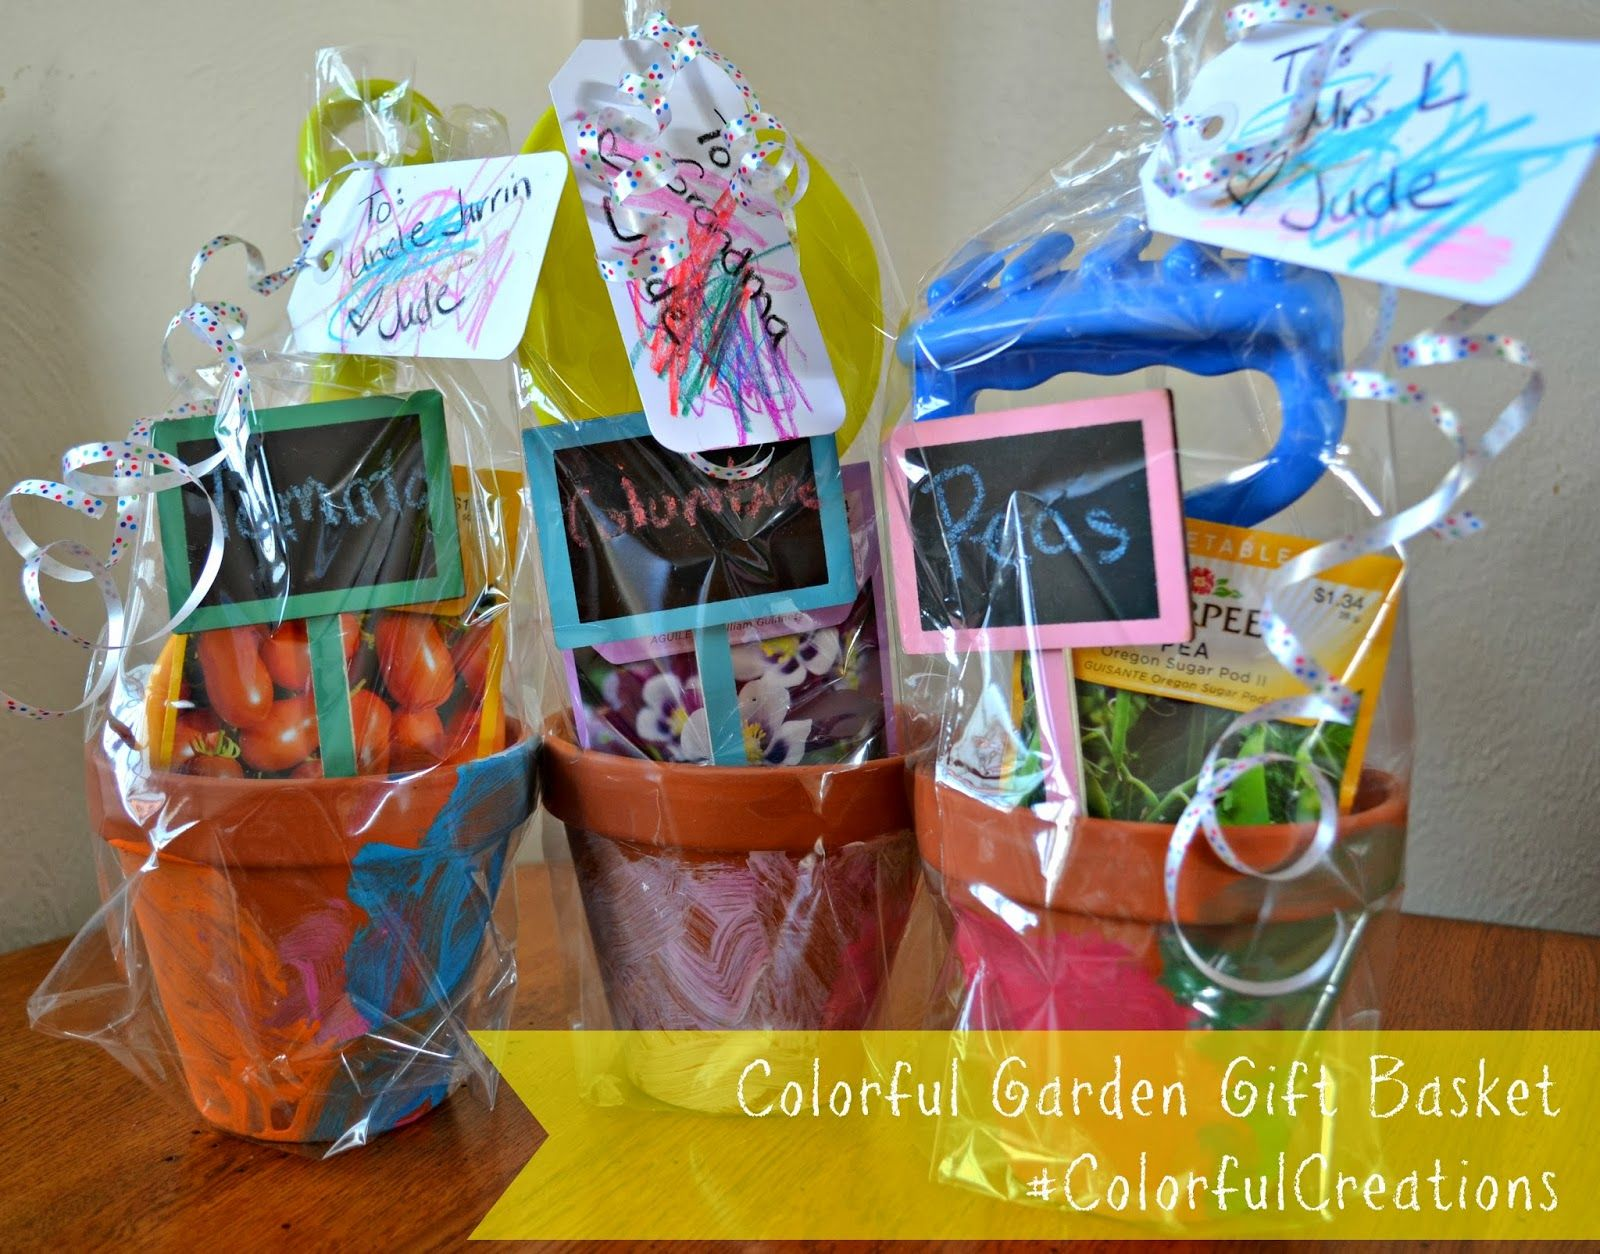 Creating a colorful garden gift basket using crayola crayons and creating a colorful garden gift basket using crayola crayons and sidewalk chalk colorfulcreations shop negle Images